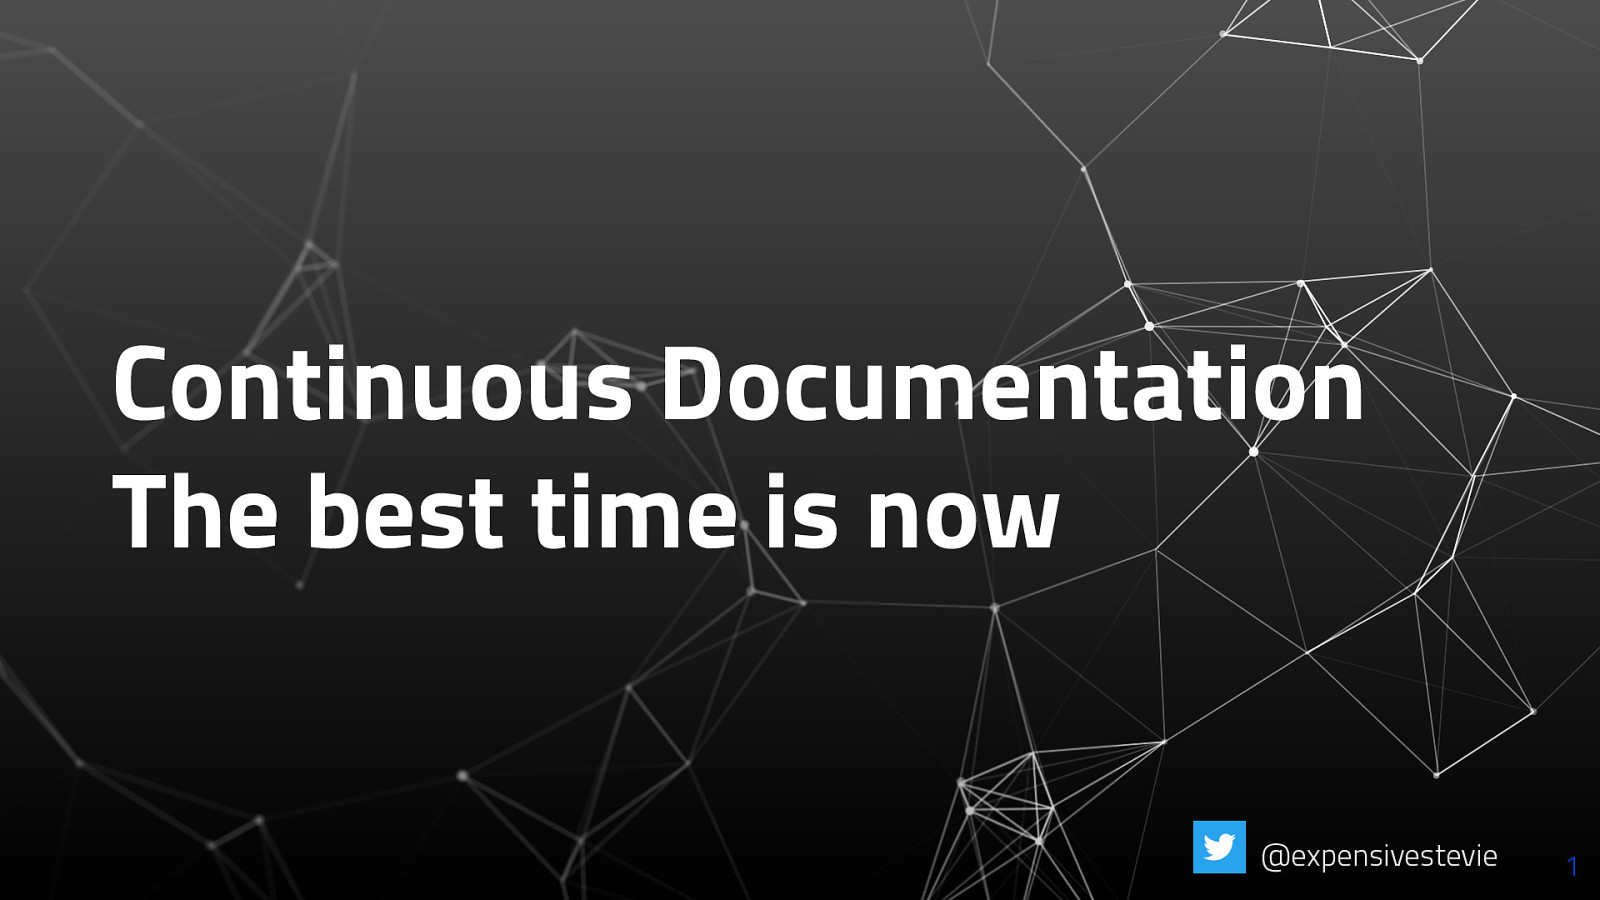 Continuous Documentation - The best time is now